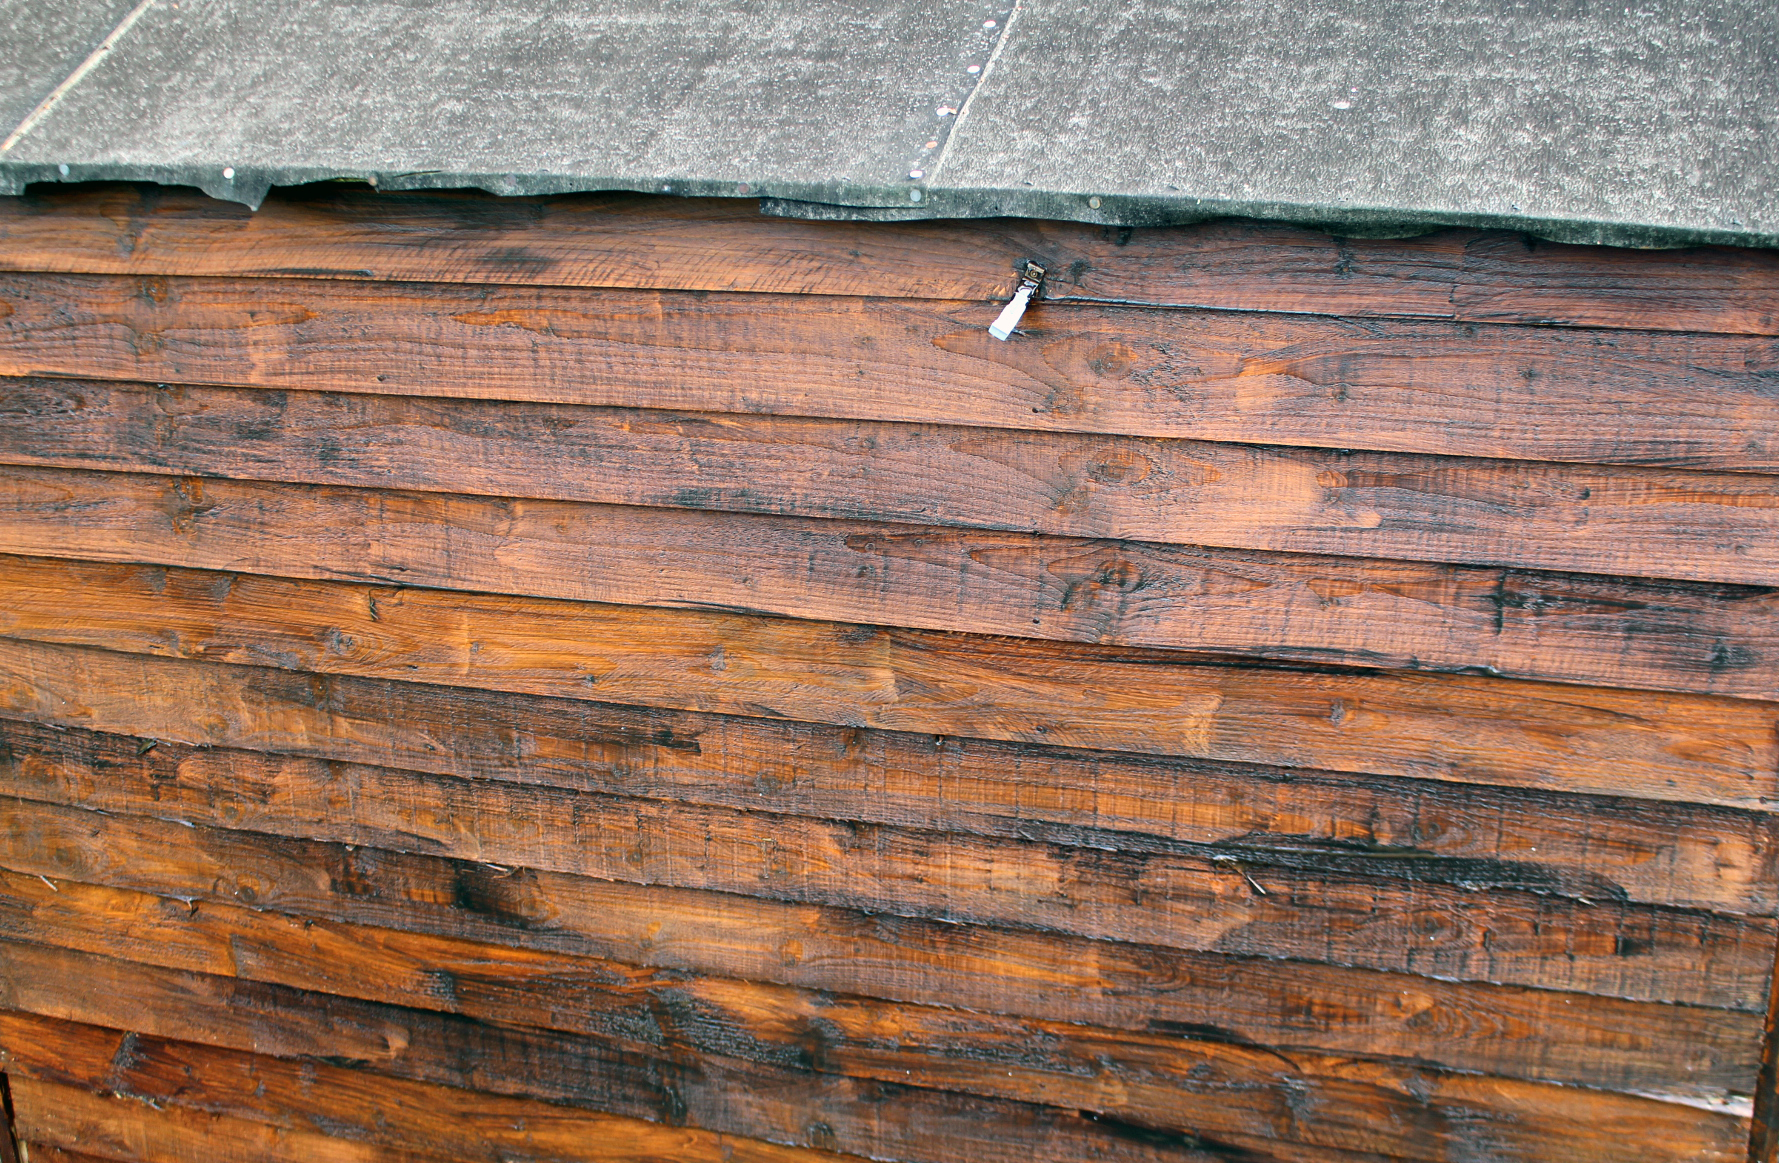 Giving the garden shed some love with Sadolin wood stain